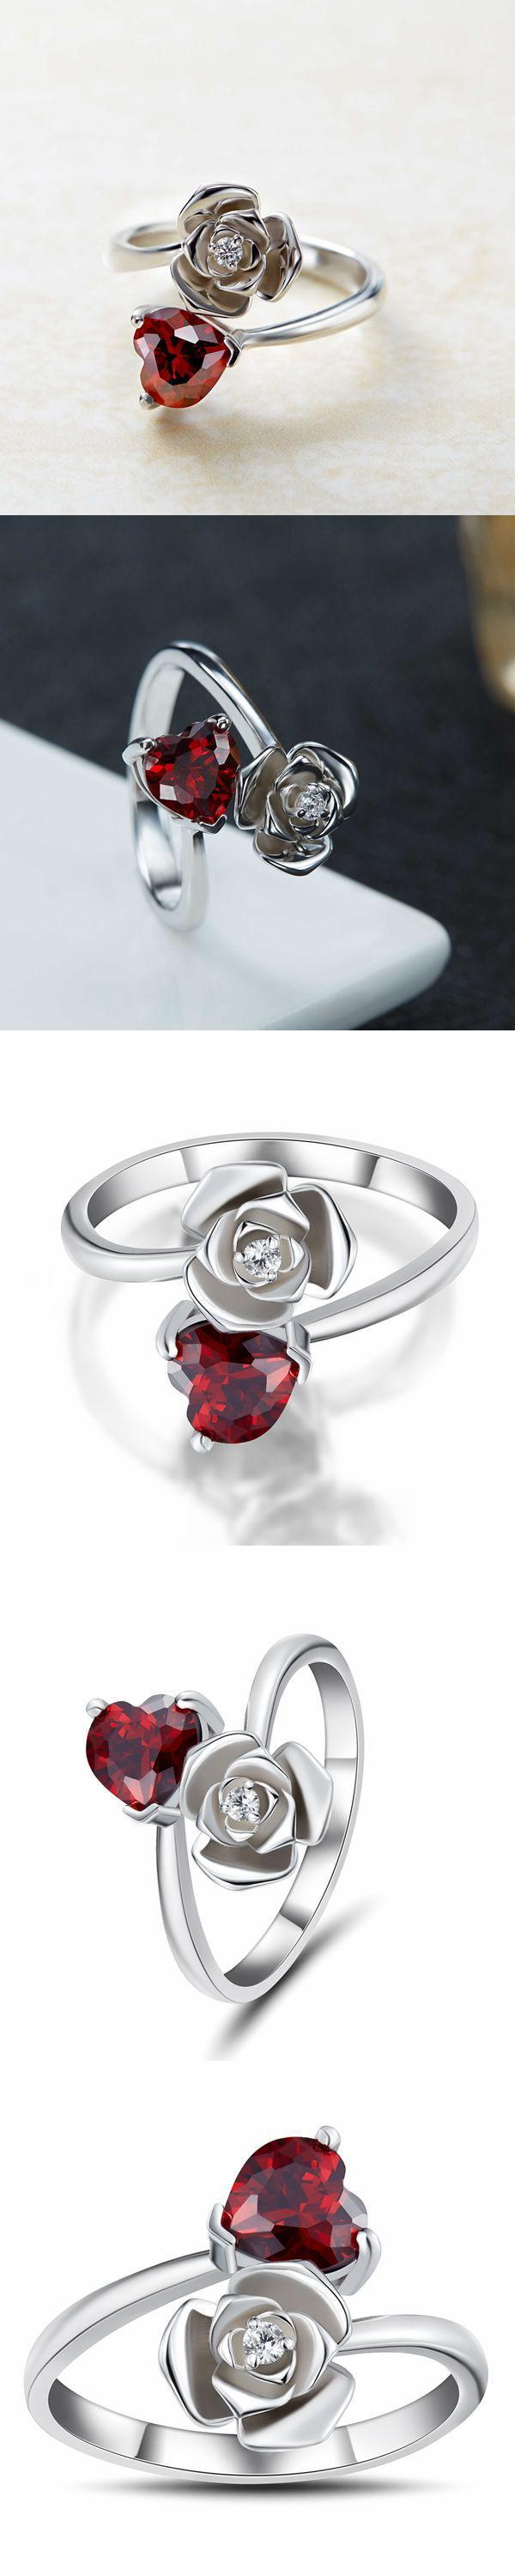 Lajerrio Jewelry Heart Cut Garnet S925 Promise Rings For Her